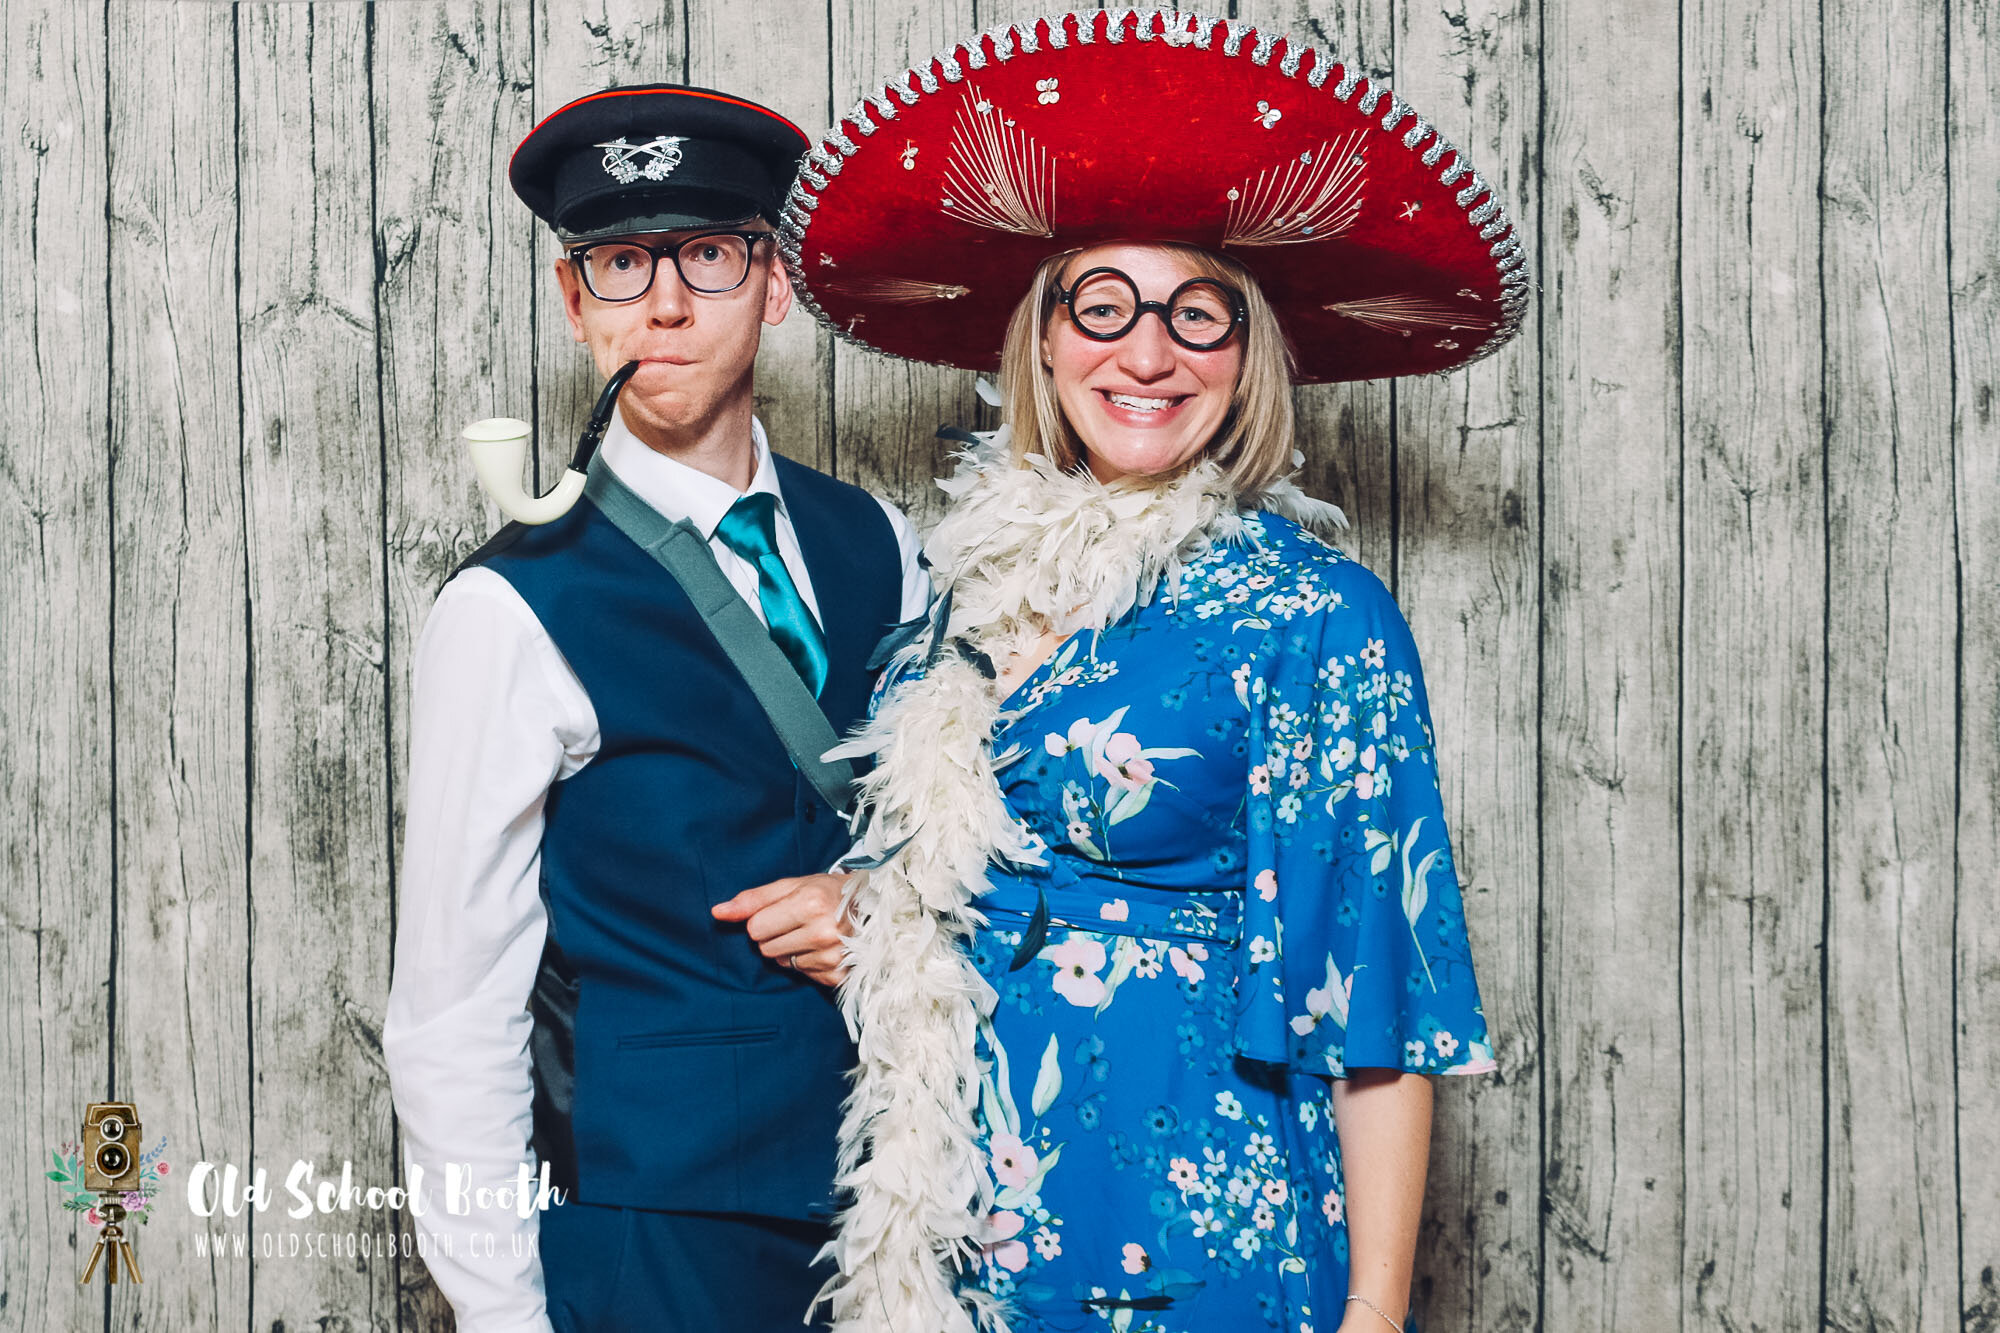 Best wedding photo booth hire